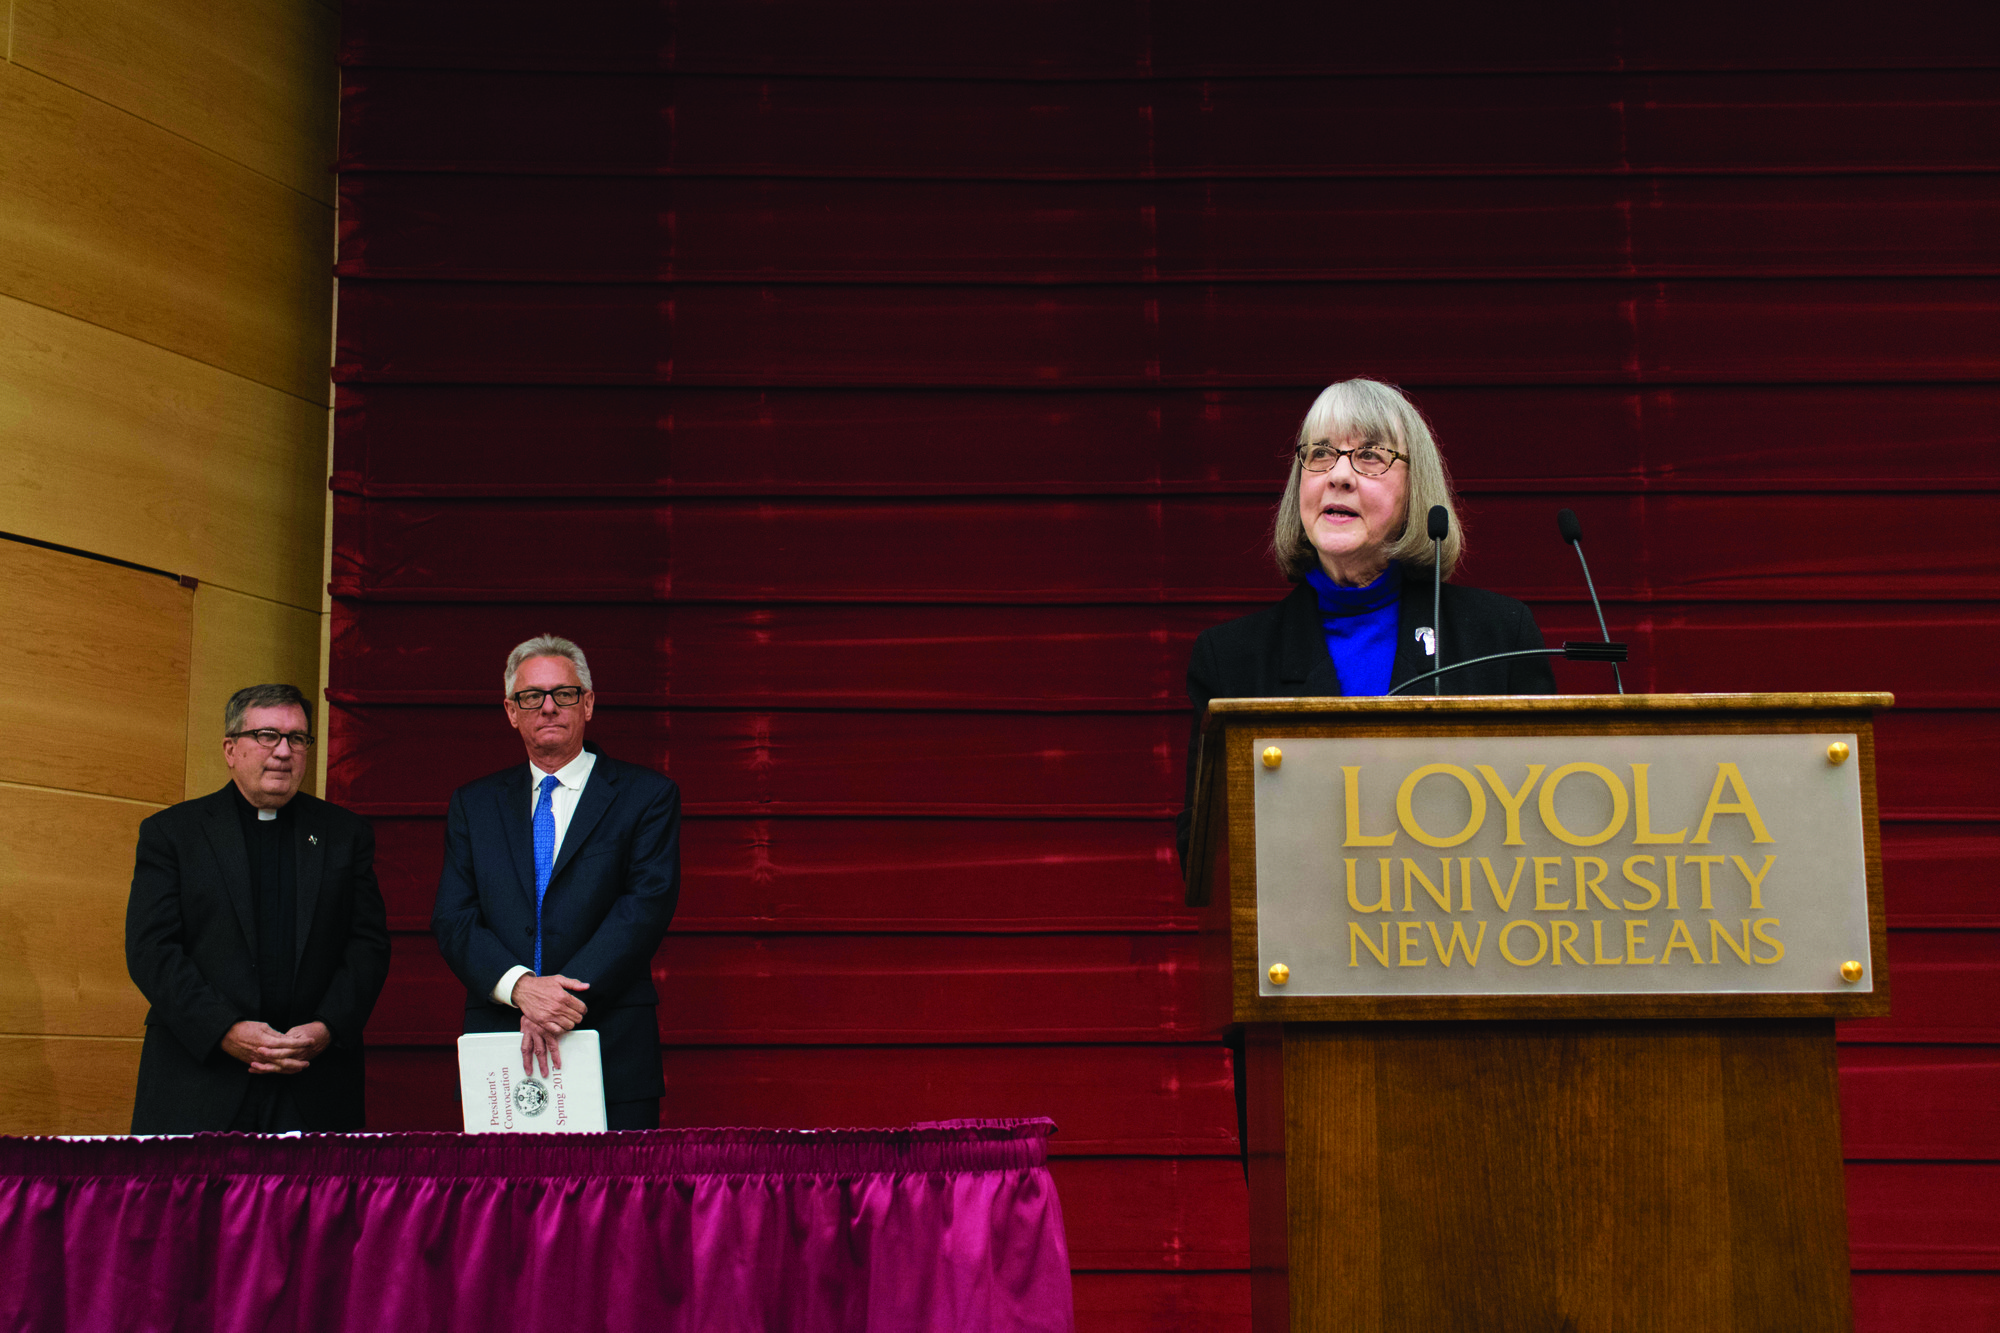 Leslie Parr, A. Louis Read Distinguished Professor in Communication, gives speech after receiving Dux Academicus award. Parr is the 39th faculty member to receive this award. Photo credit: Nicholas Boulet